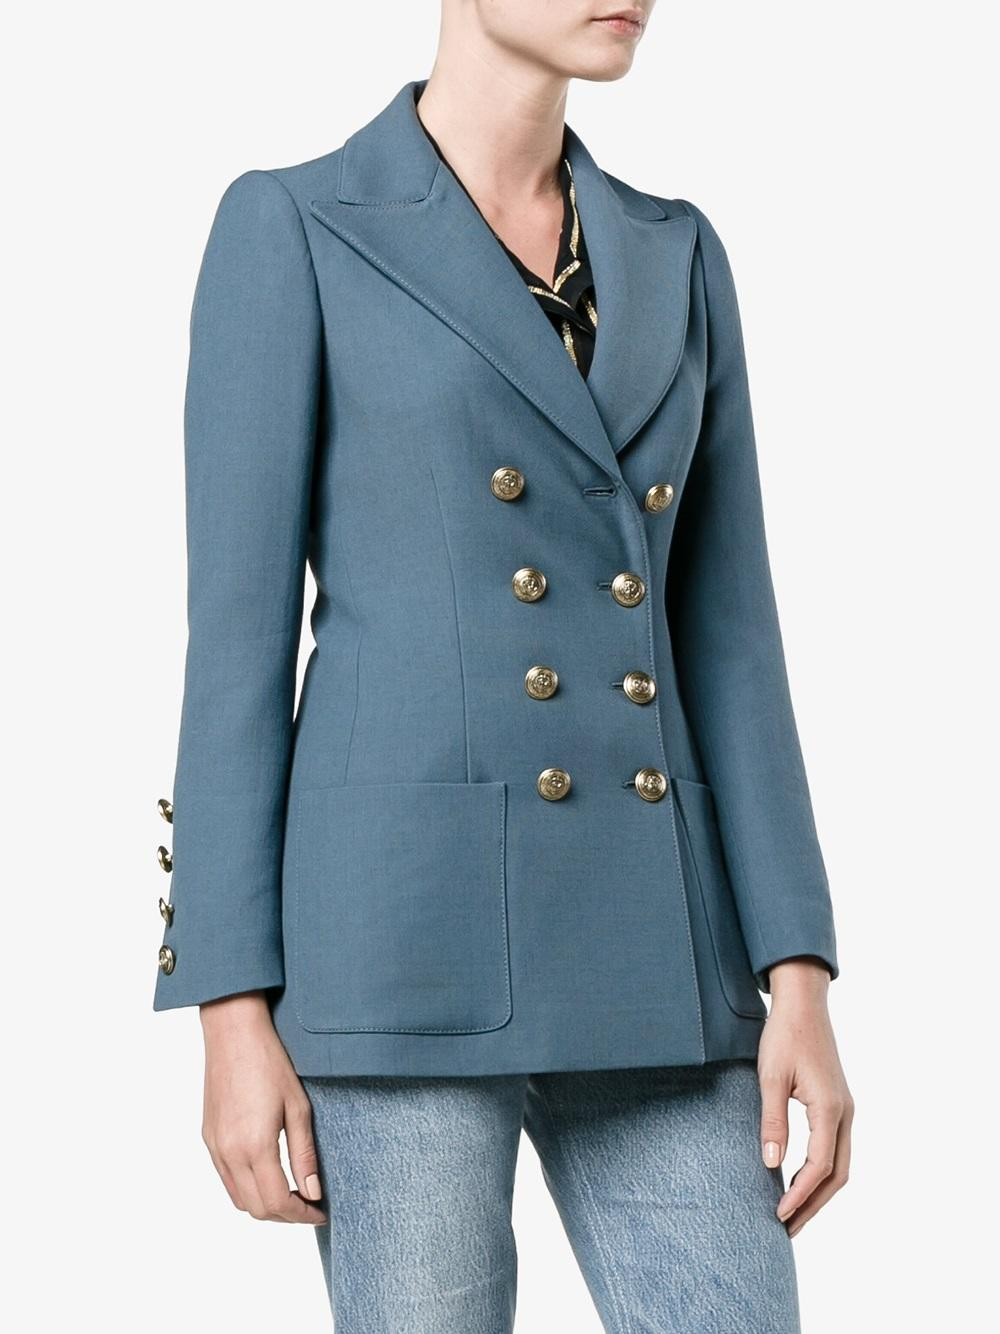 Philosophy di Lorenzo Serafini jacket in blue